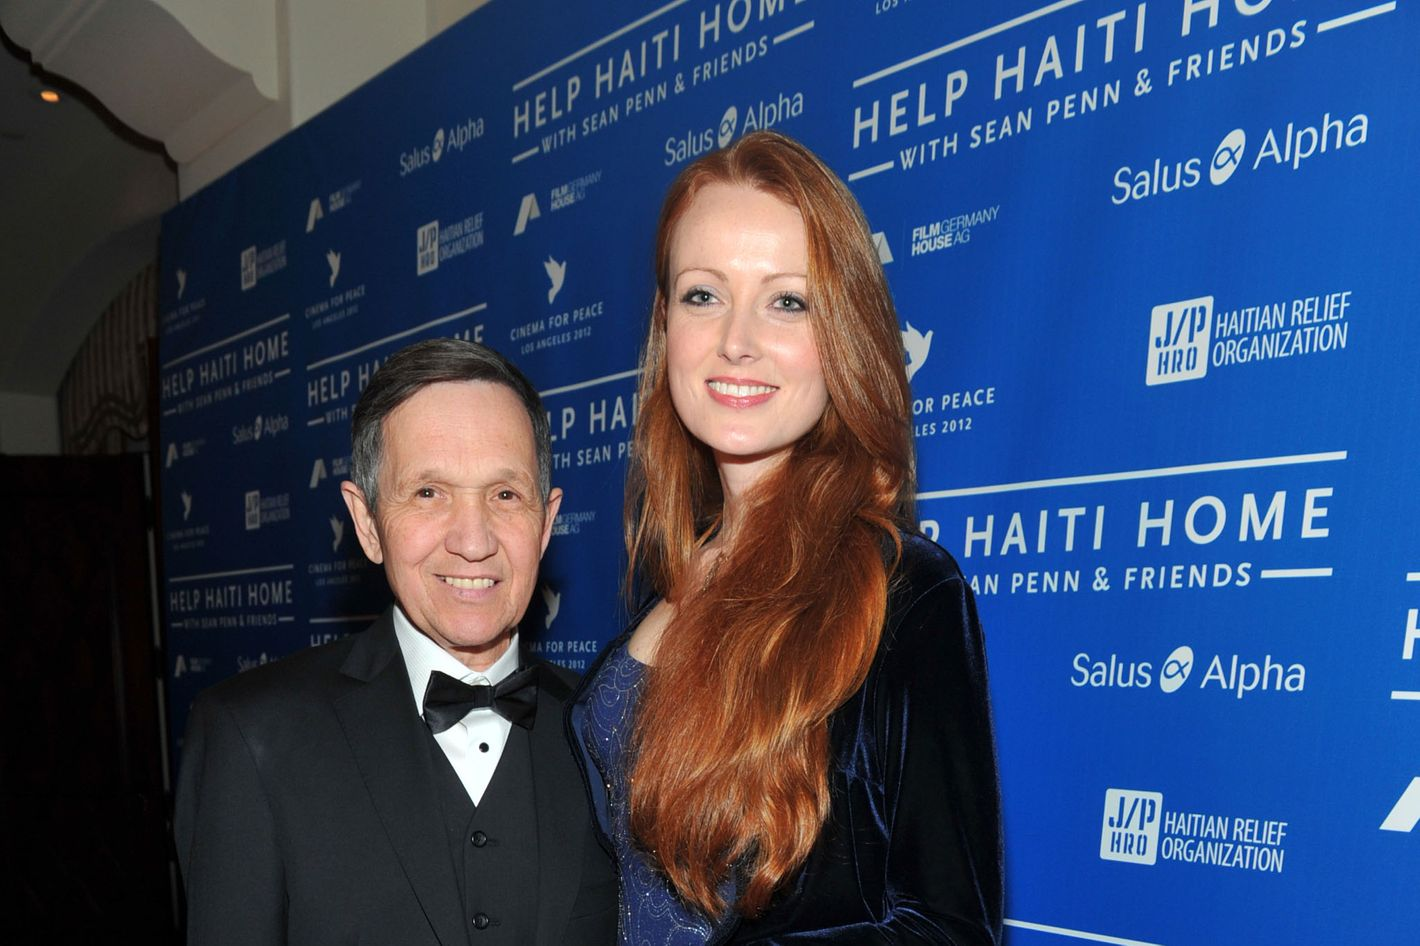 U.S. Representative Dennis Kucinich (L) and wife Elizabeth Kucinich arrive at the Cinema For Peace event benefitting J/P Haitian Relief Organization in Los Angeles held at Montage Hotel on January 14, 2012 in Los Angeles, California.